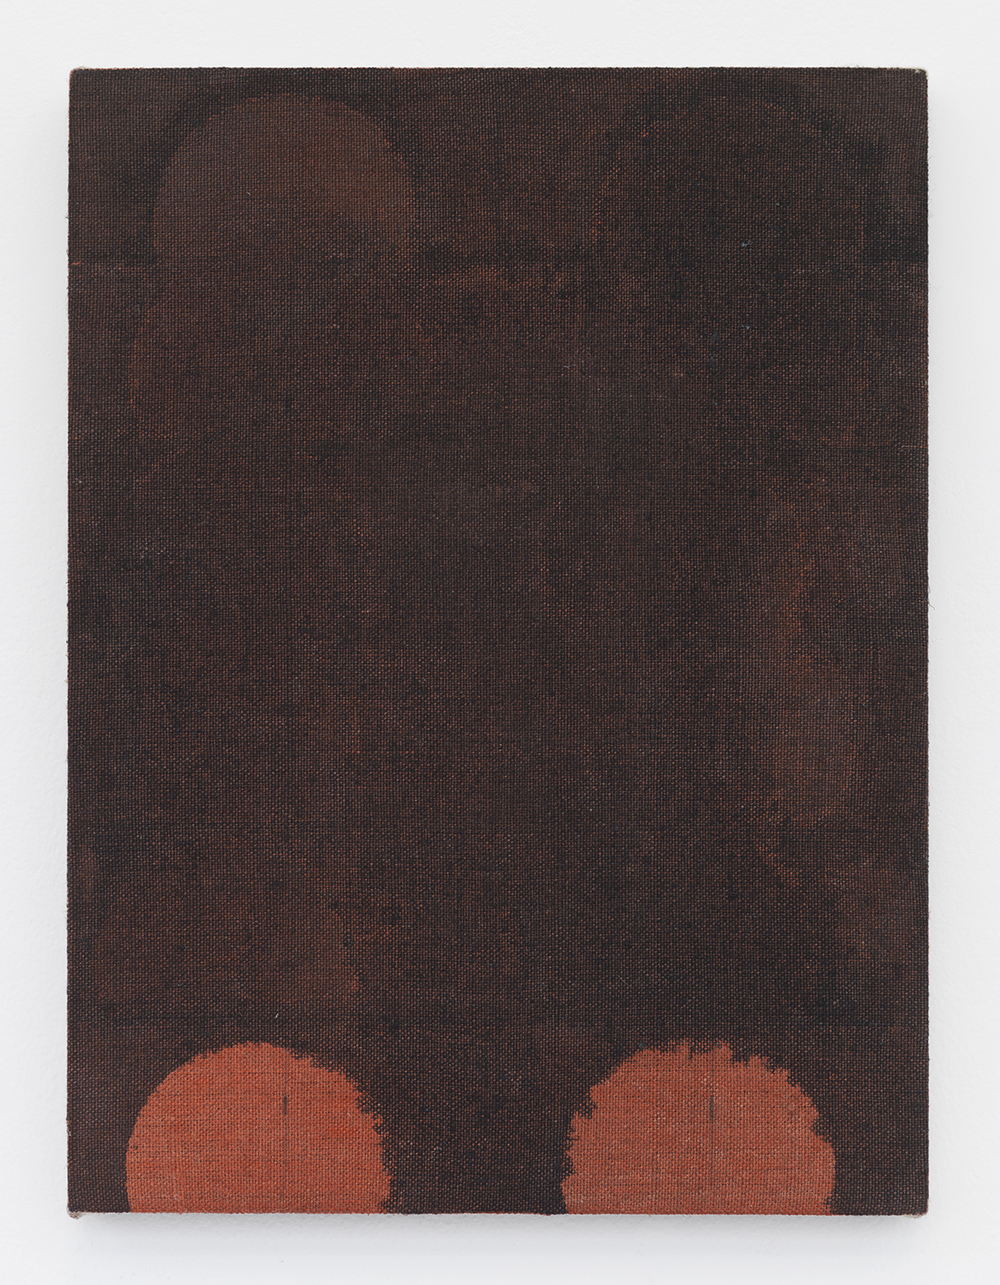 Red Wash (Bean Can) 2014 Acrylic and India ink on linen 12 x 9 inches